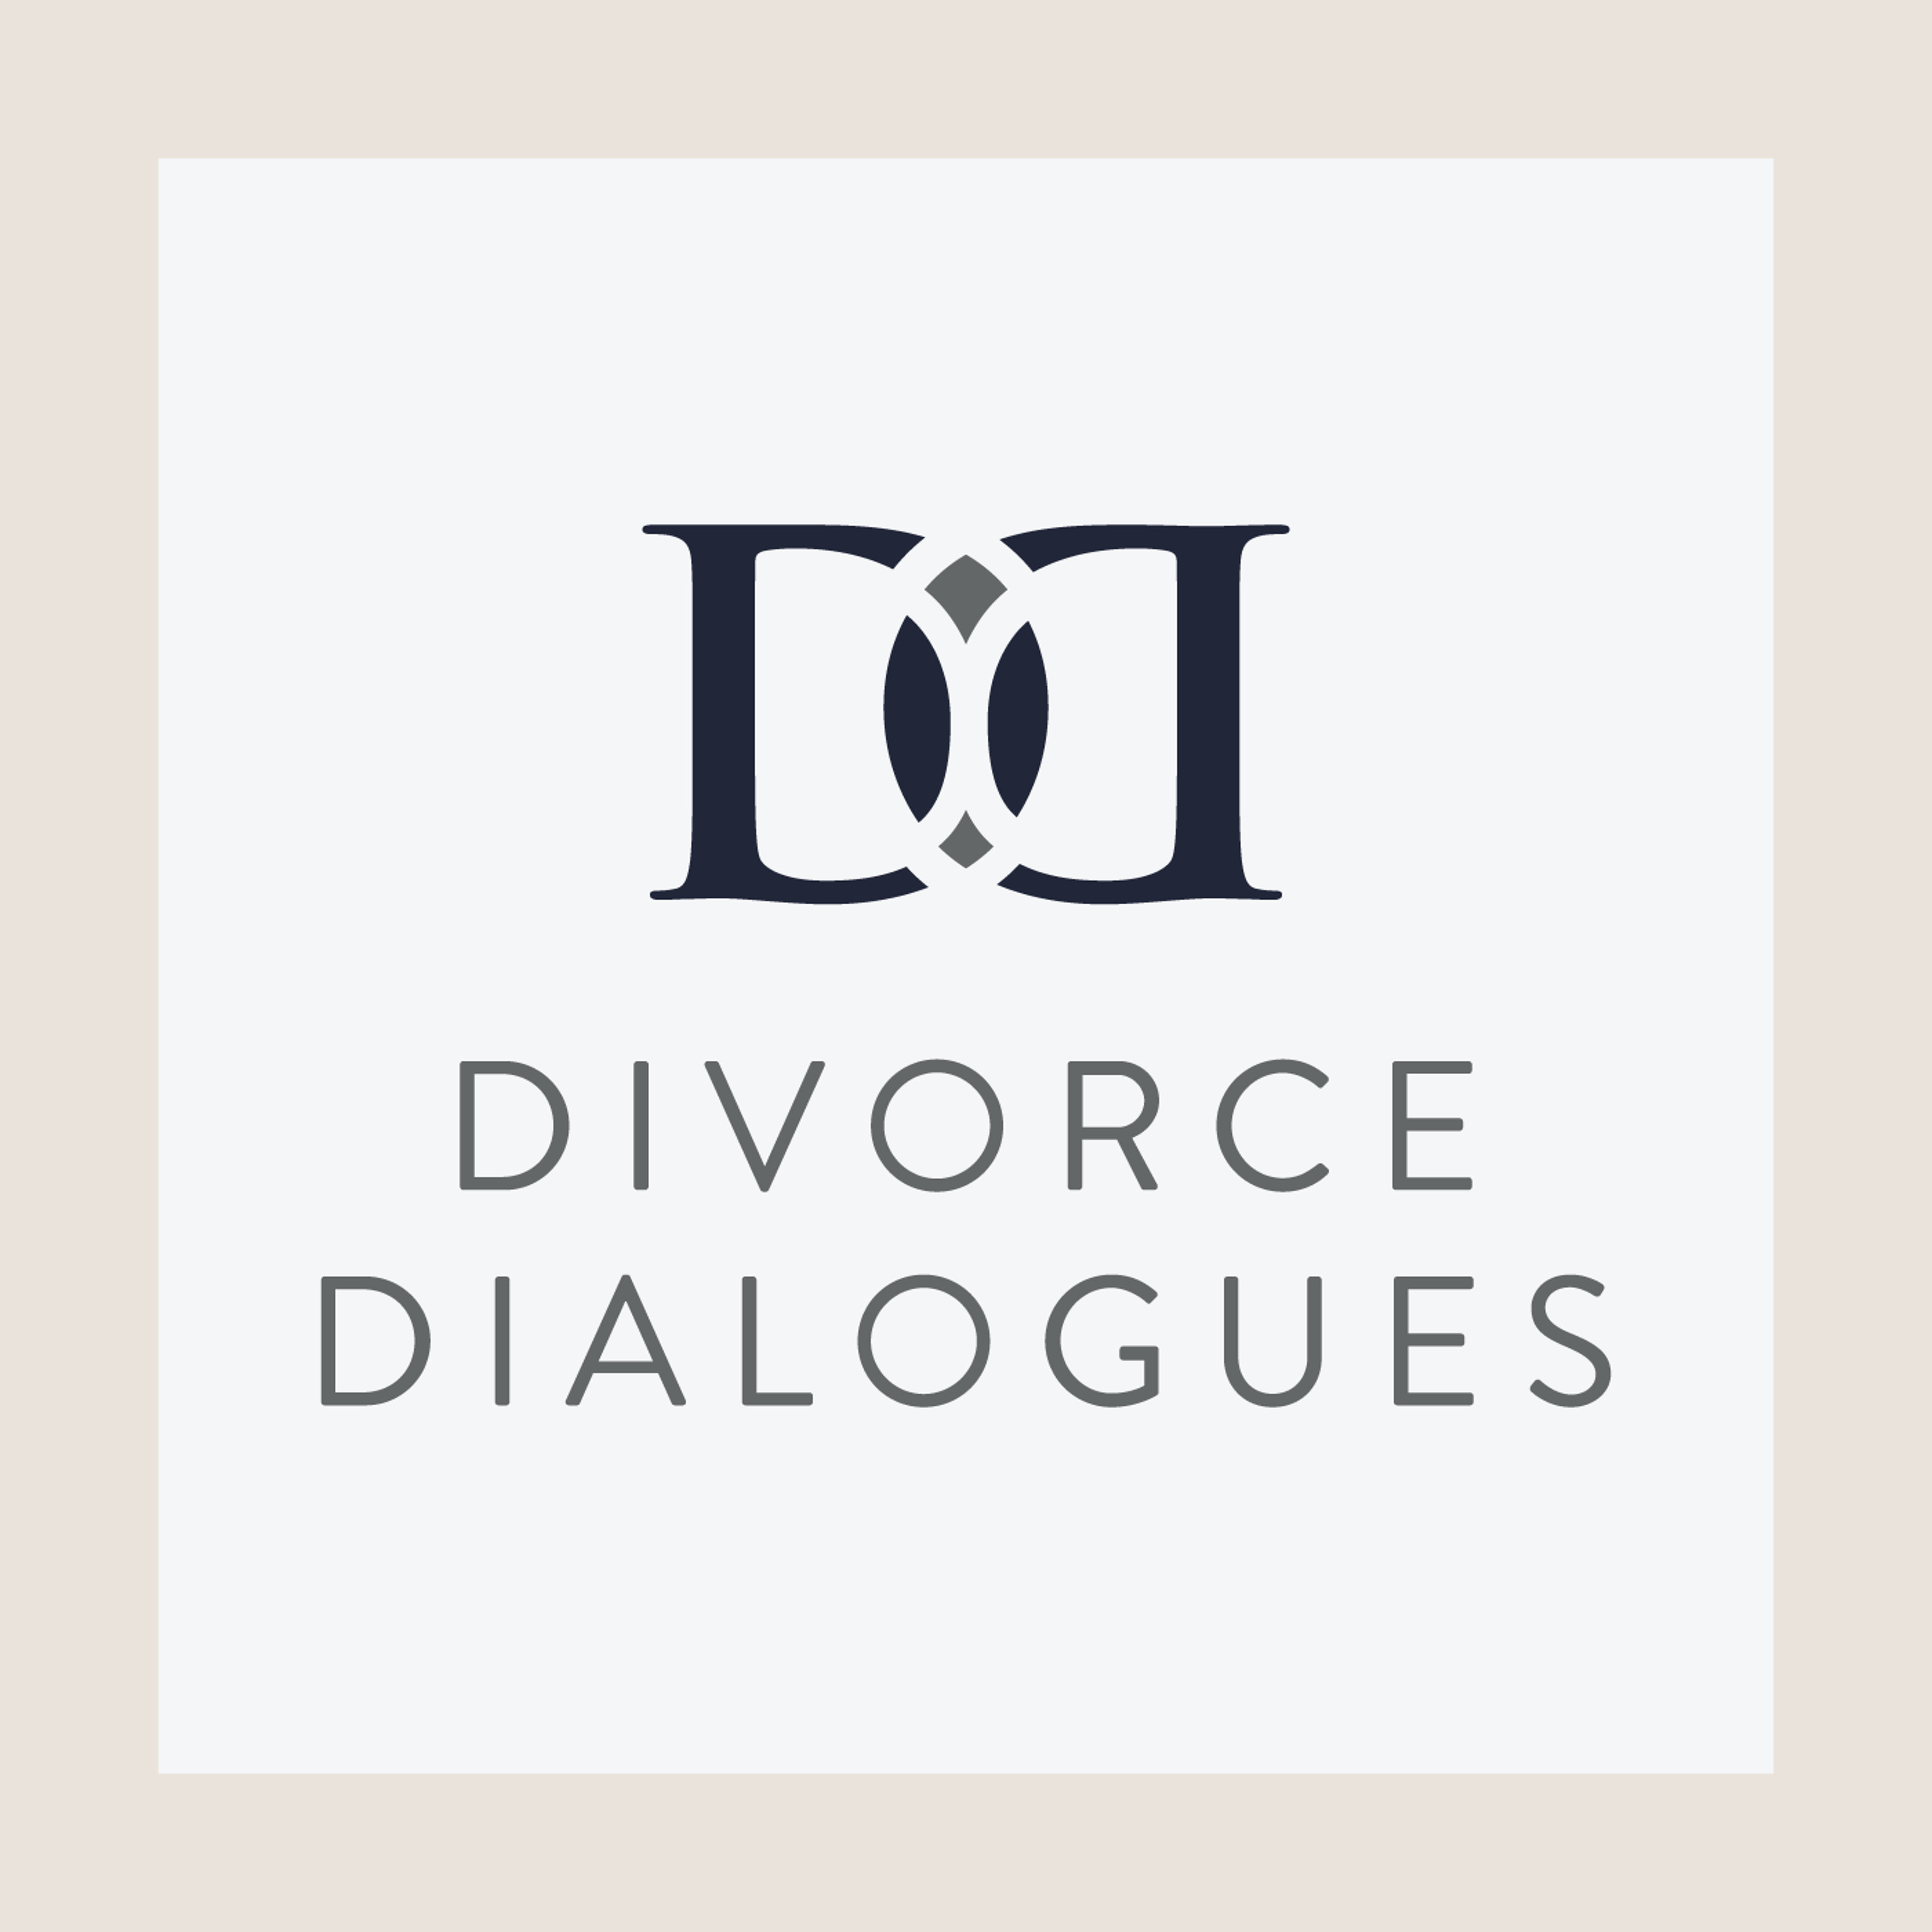 Divorce Dialogues - The Healing Power of Compassion with Dr. Steven Stosny